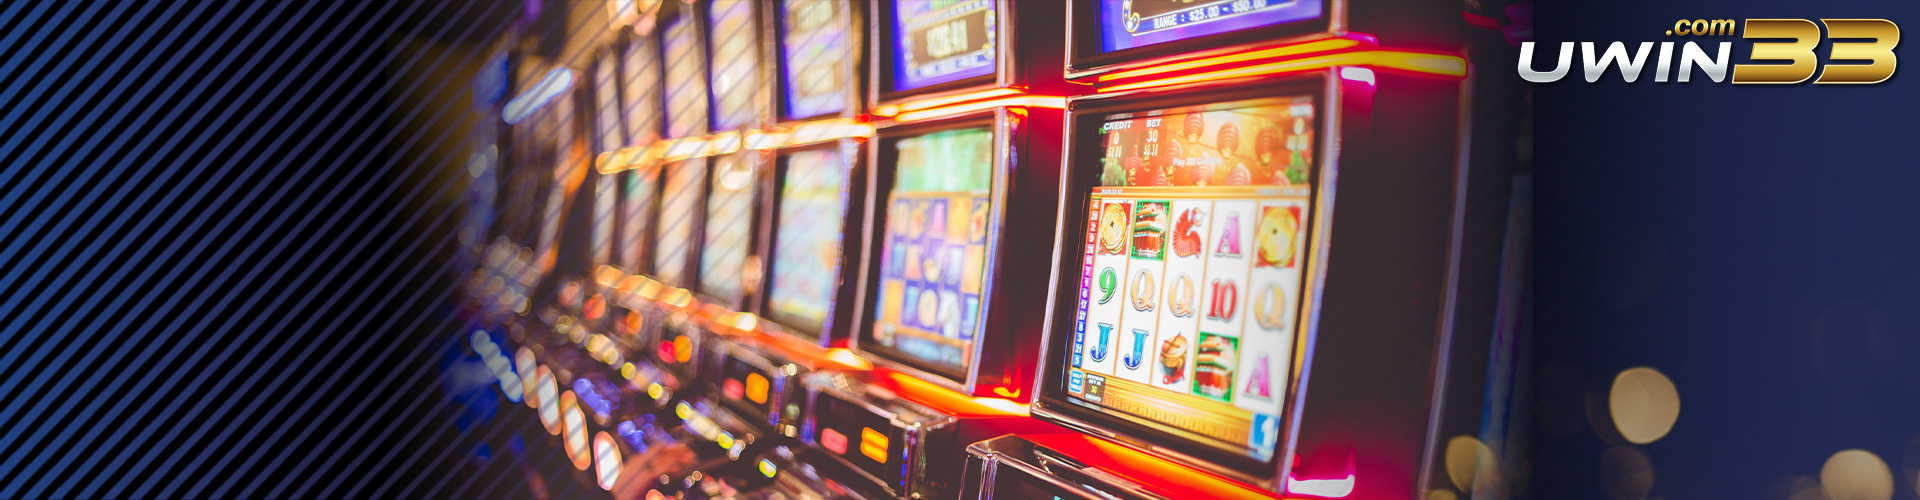 Choose your slot games with UWin33